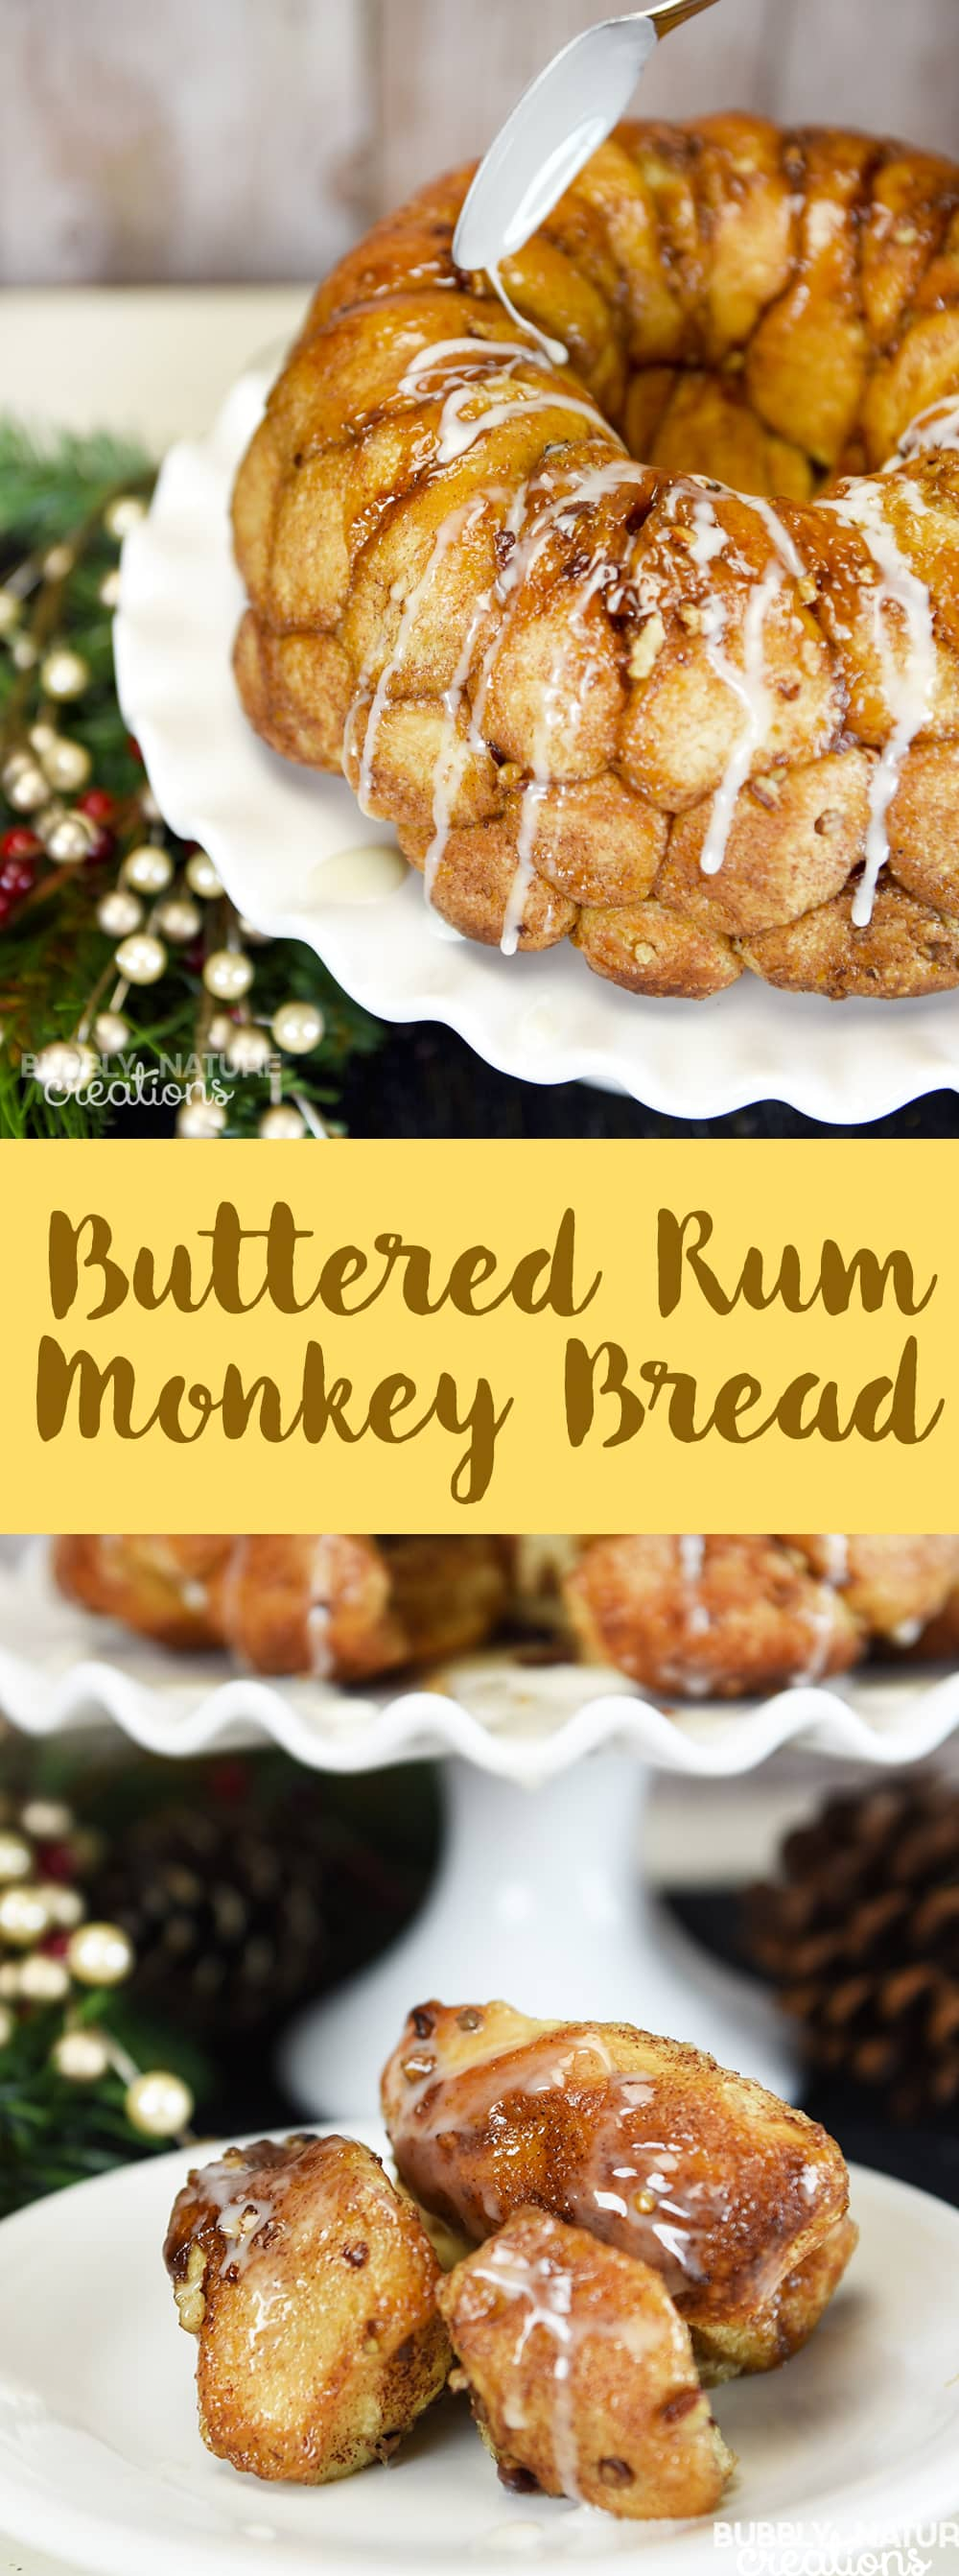 Buttered Rum Monkey Bread! Quite possible the best Christmas breaskfast item!!!